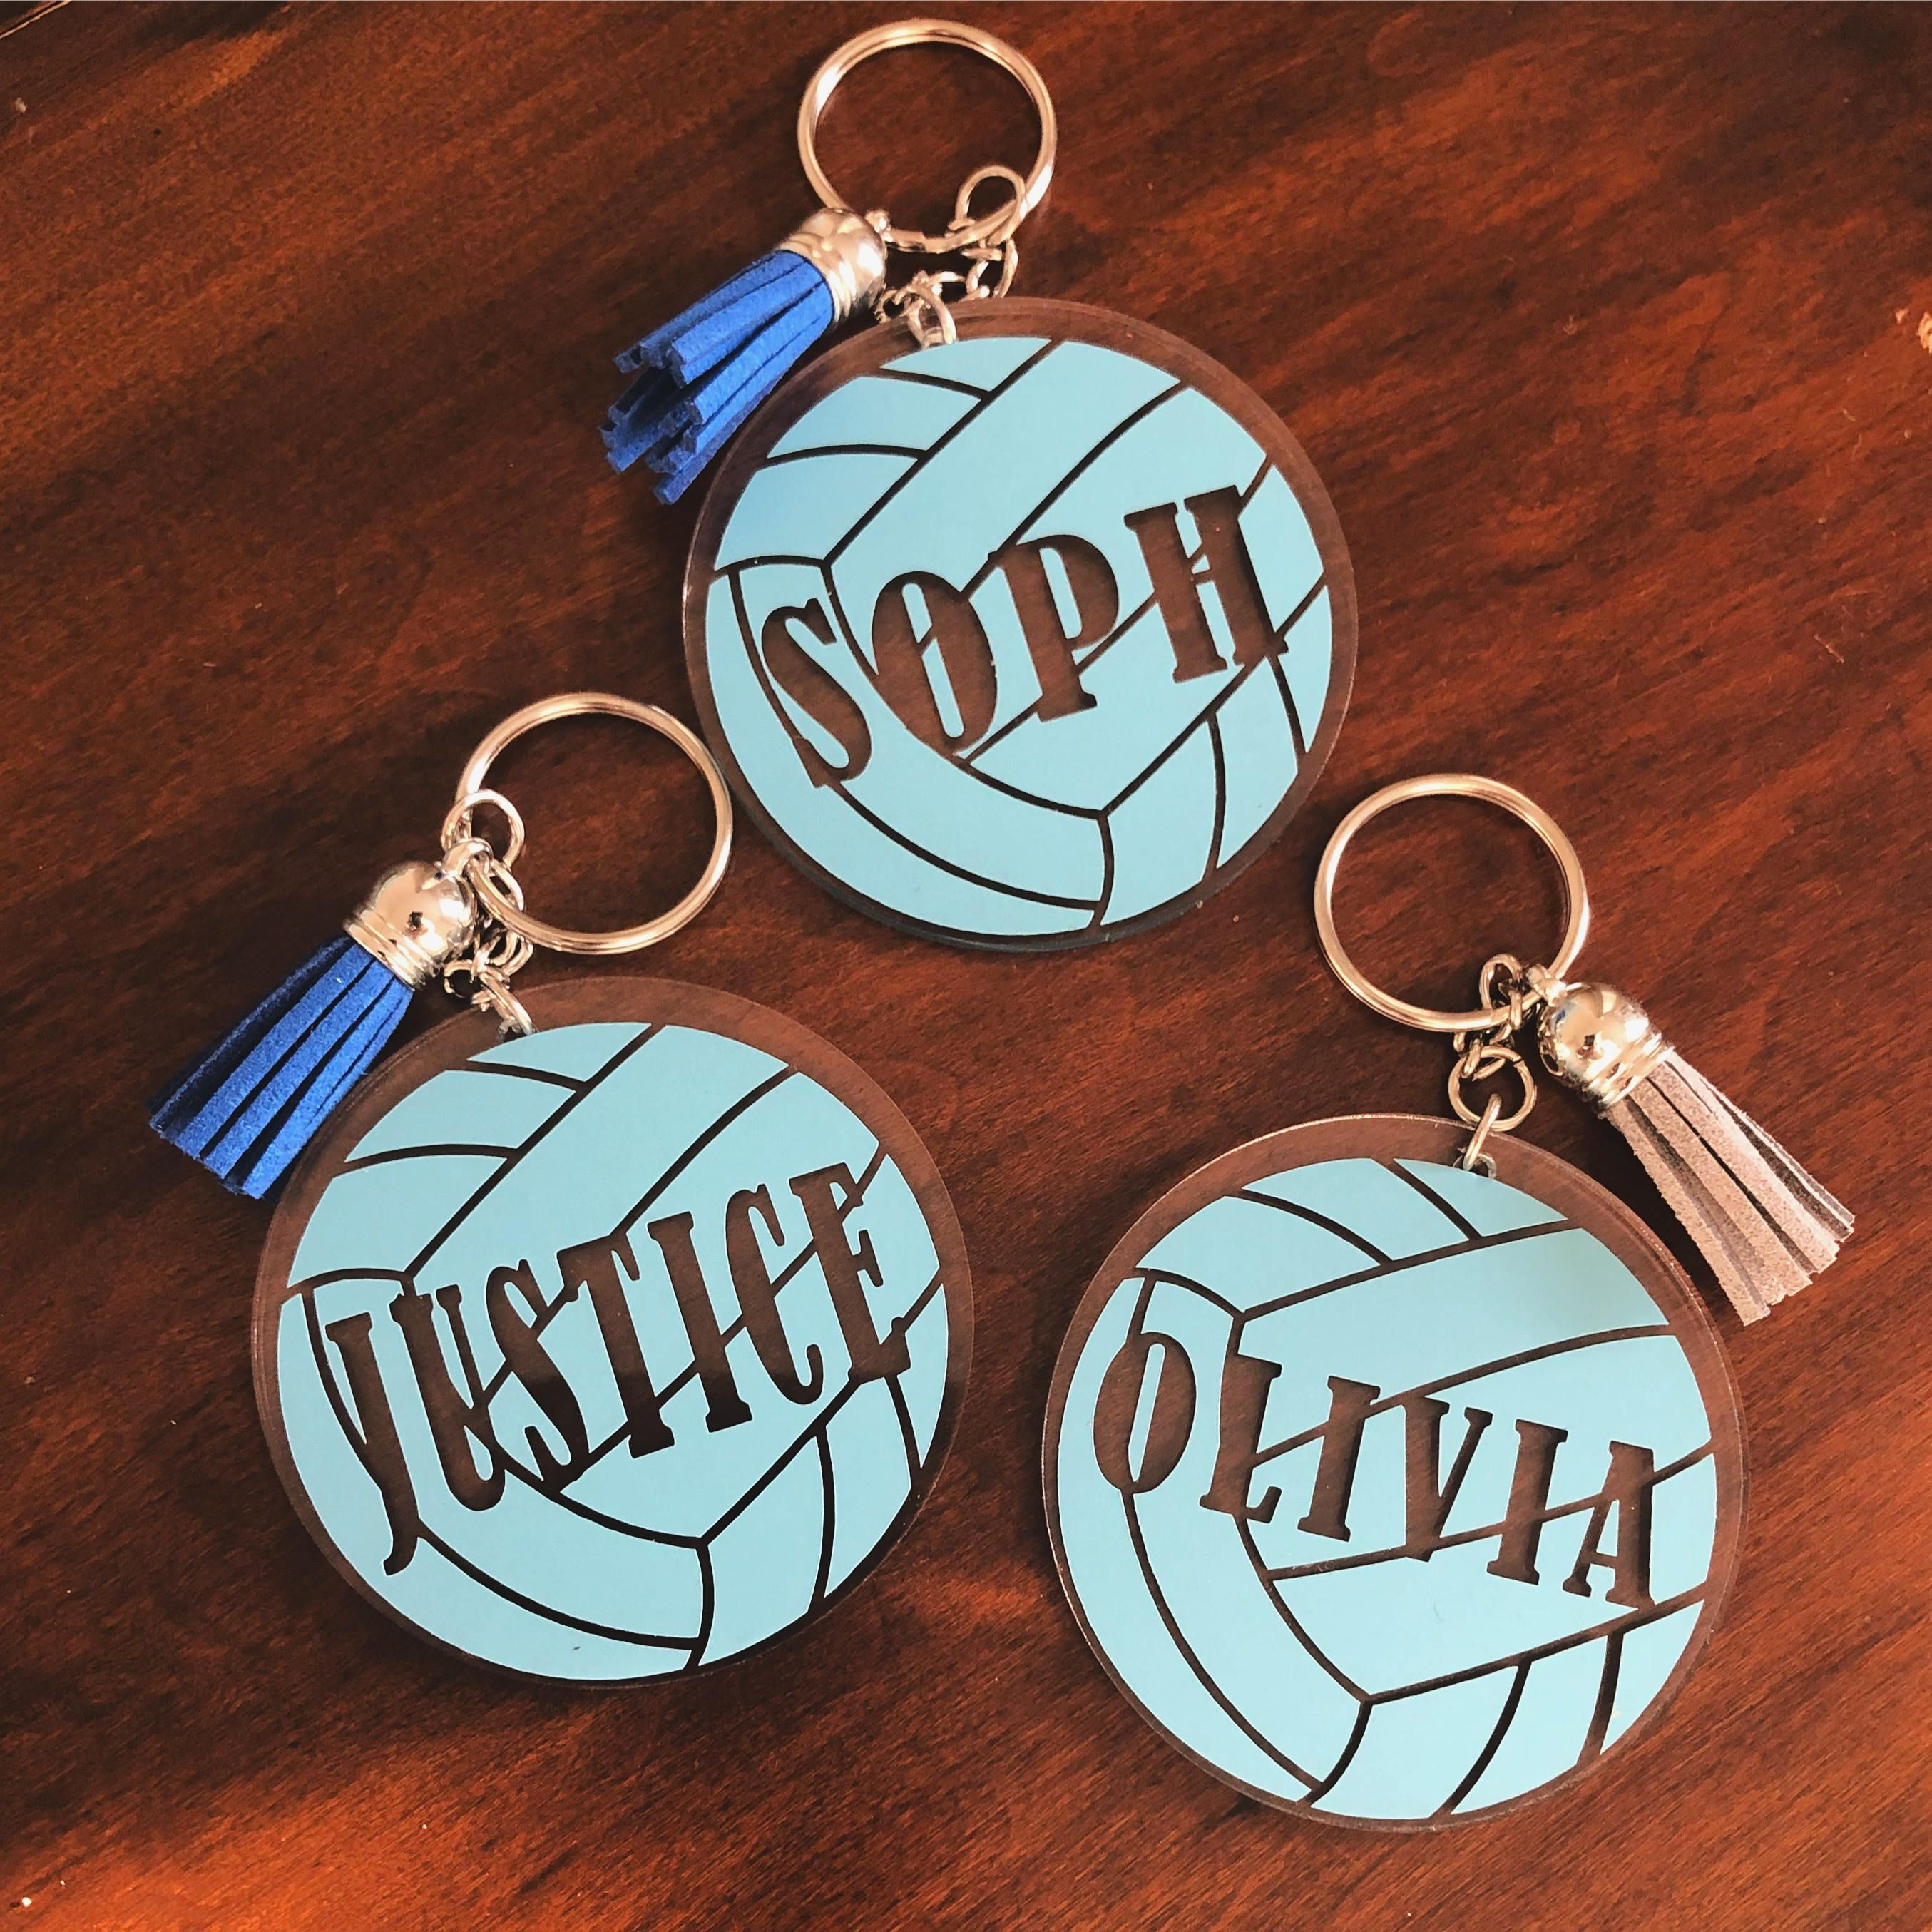 Personalized Sports Key Chain Vinyl Lettering Team Gift Monogram Acrylic Key Chain Volleyball Football Acrylic Keychains Keychain Monogram Keychain